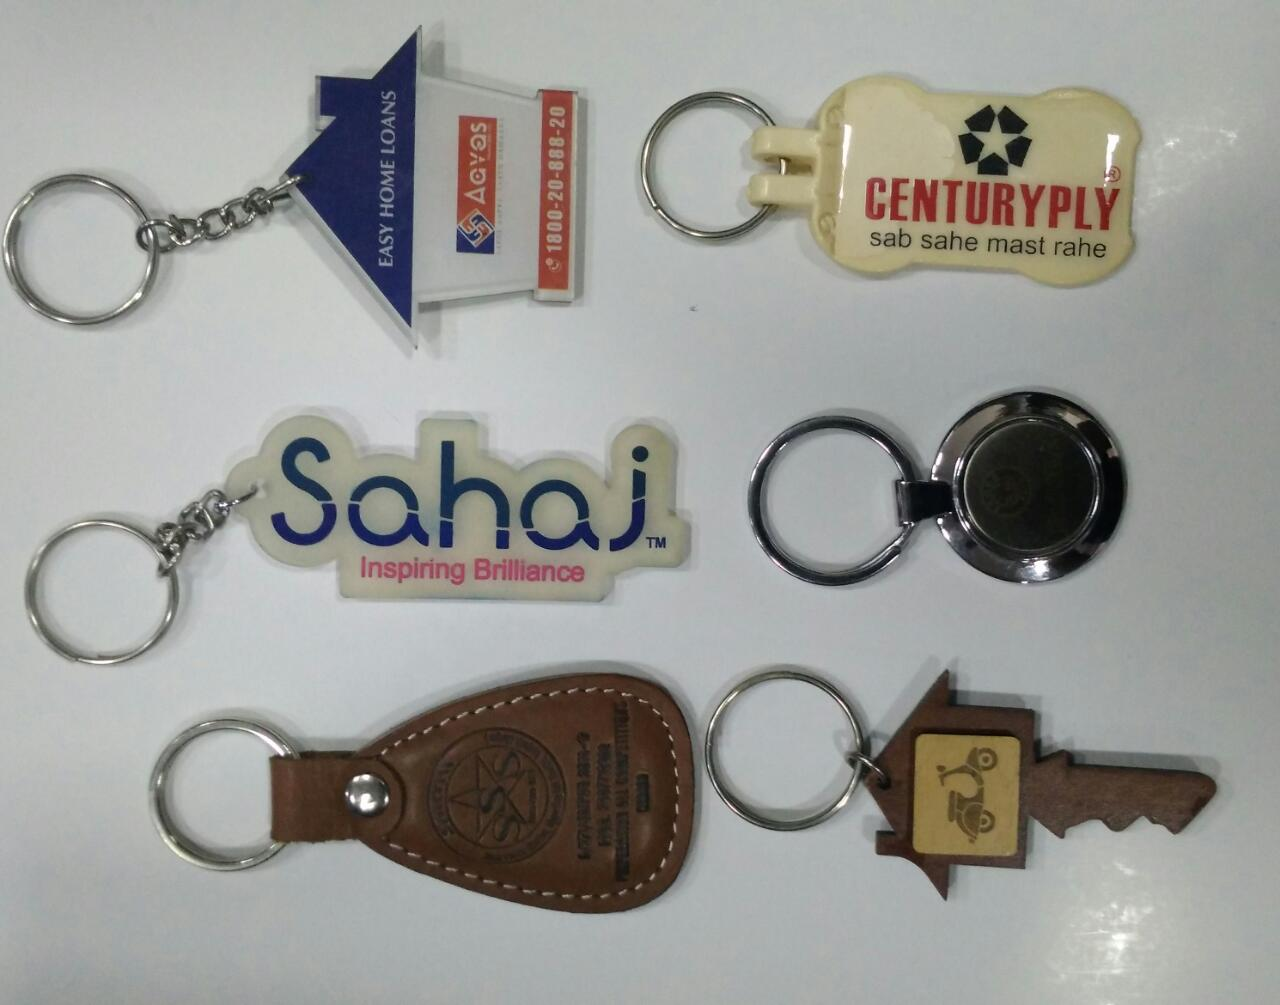 These key chains are